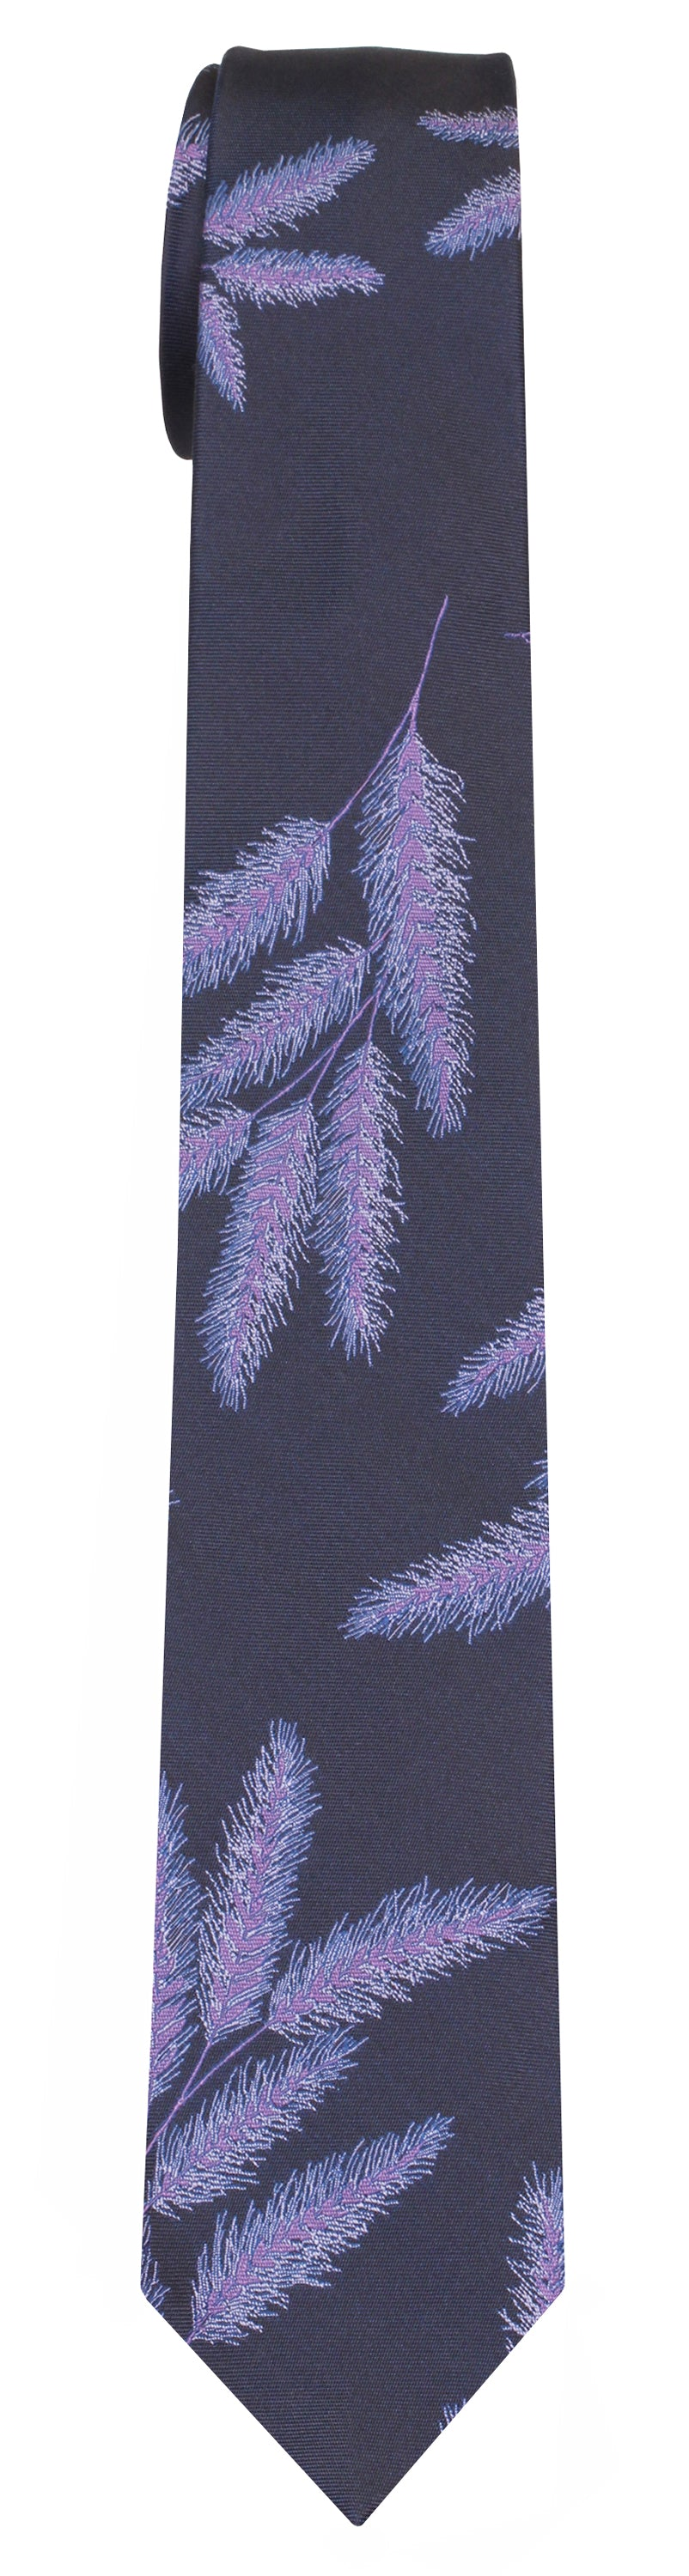 Mimi Fong Reeds Tie in Navy & Periwinkle